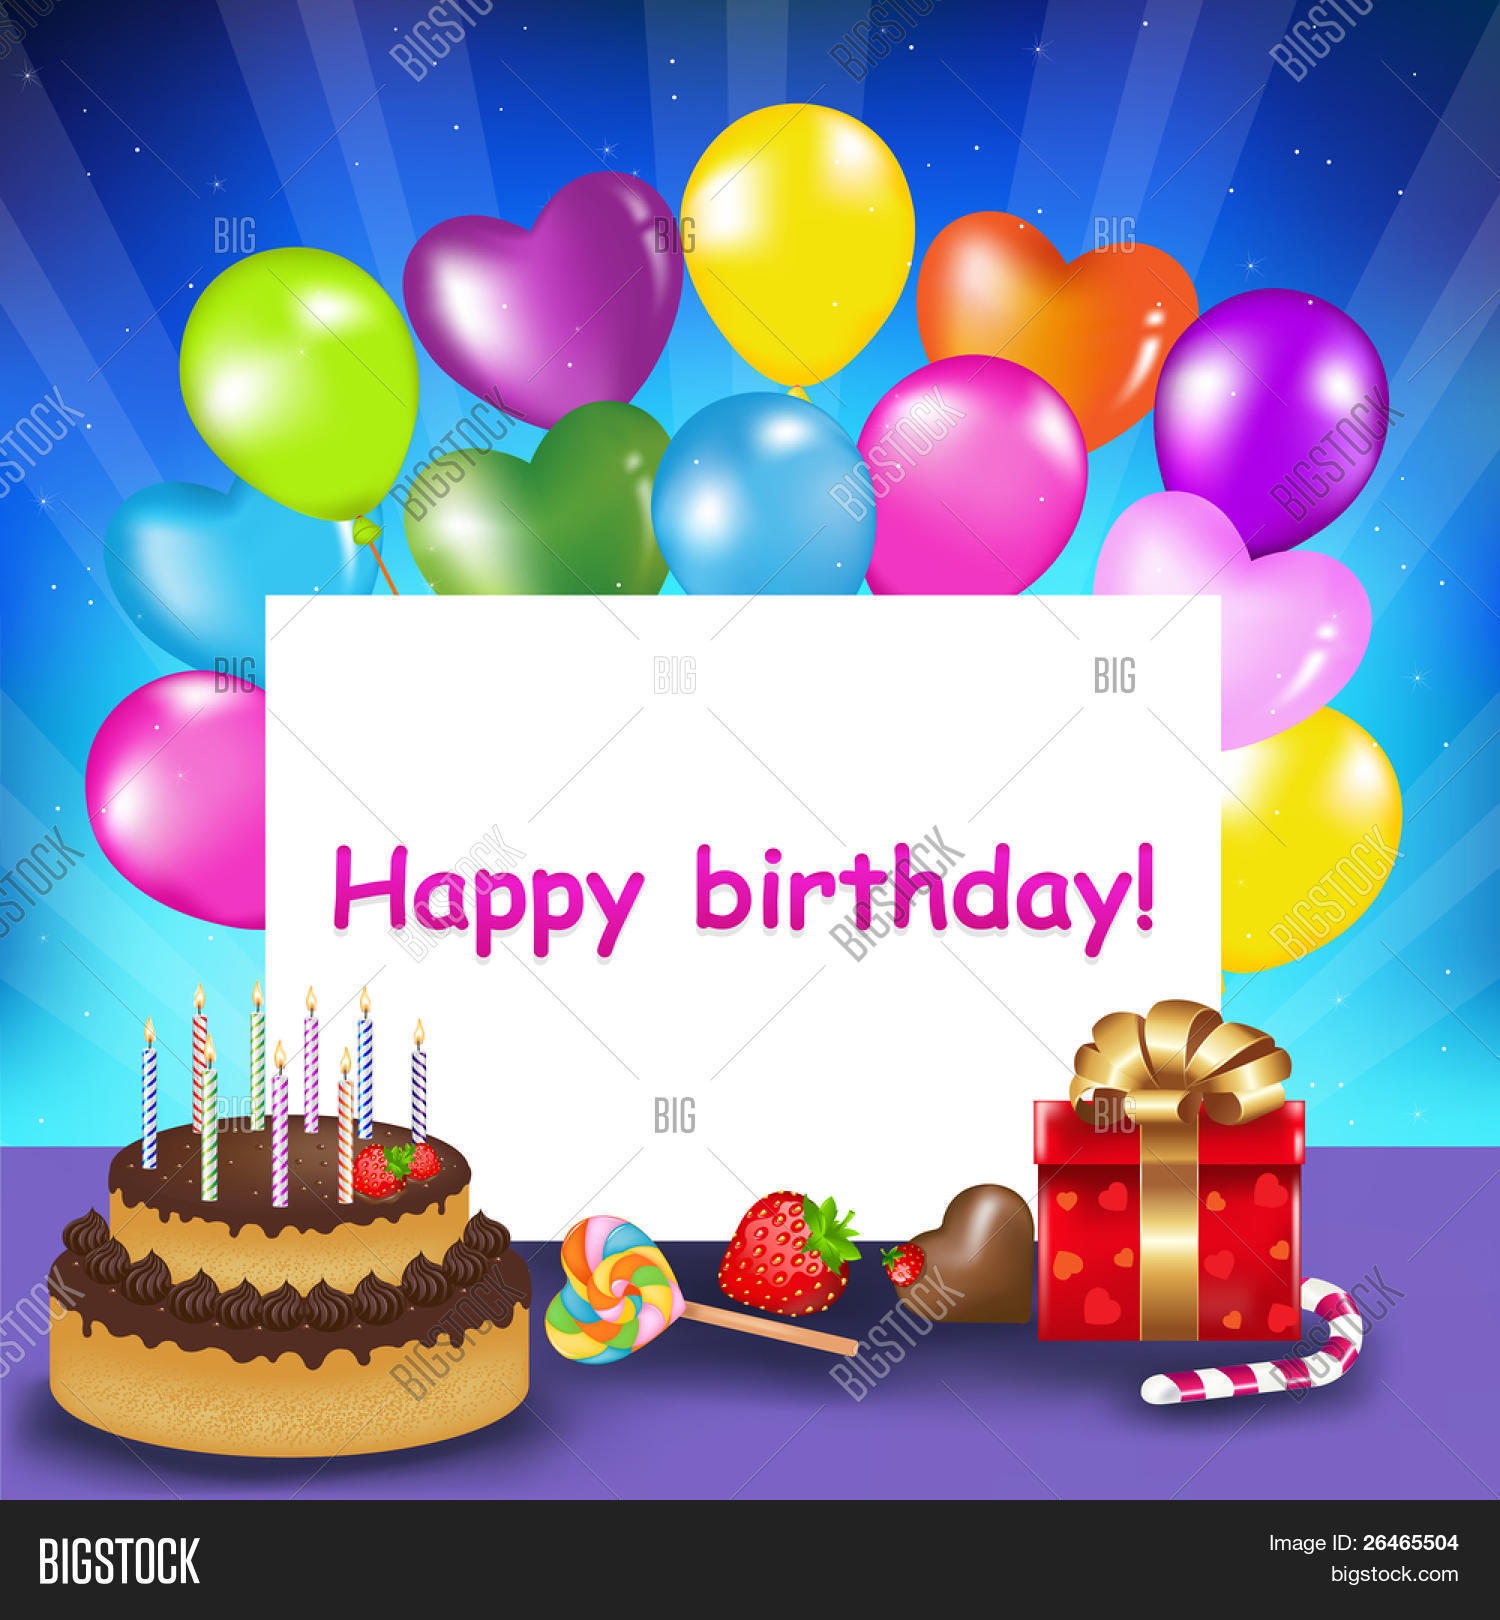 Decoration Ready For Birthday With Cake Candles Balloons Sweets And Gift